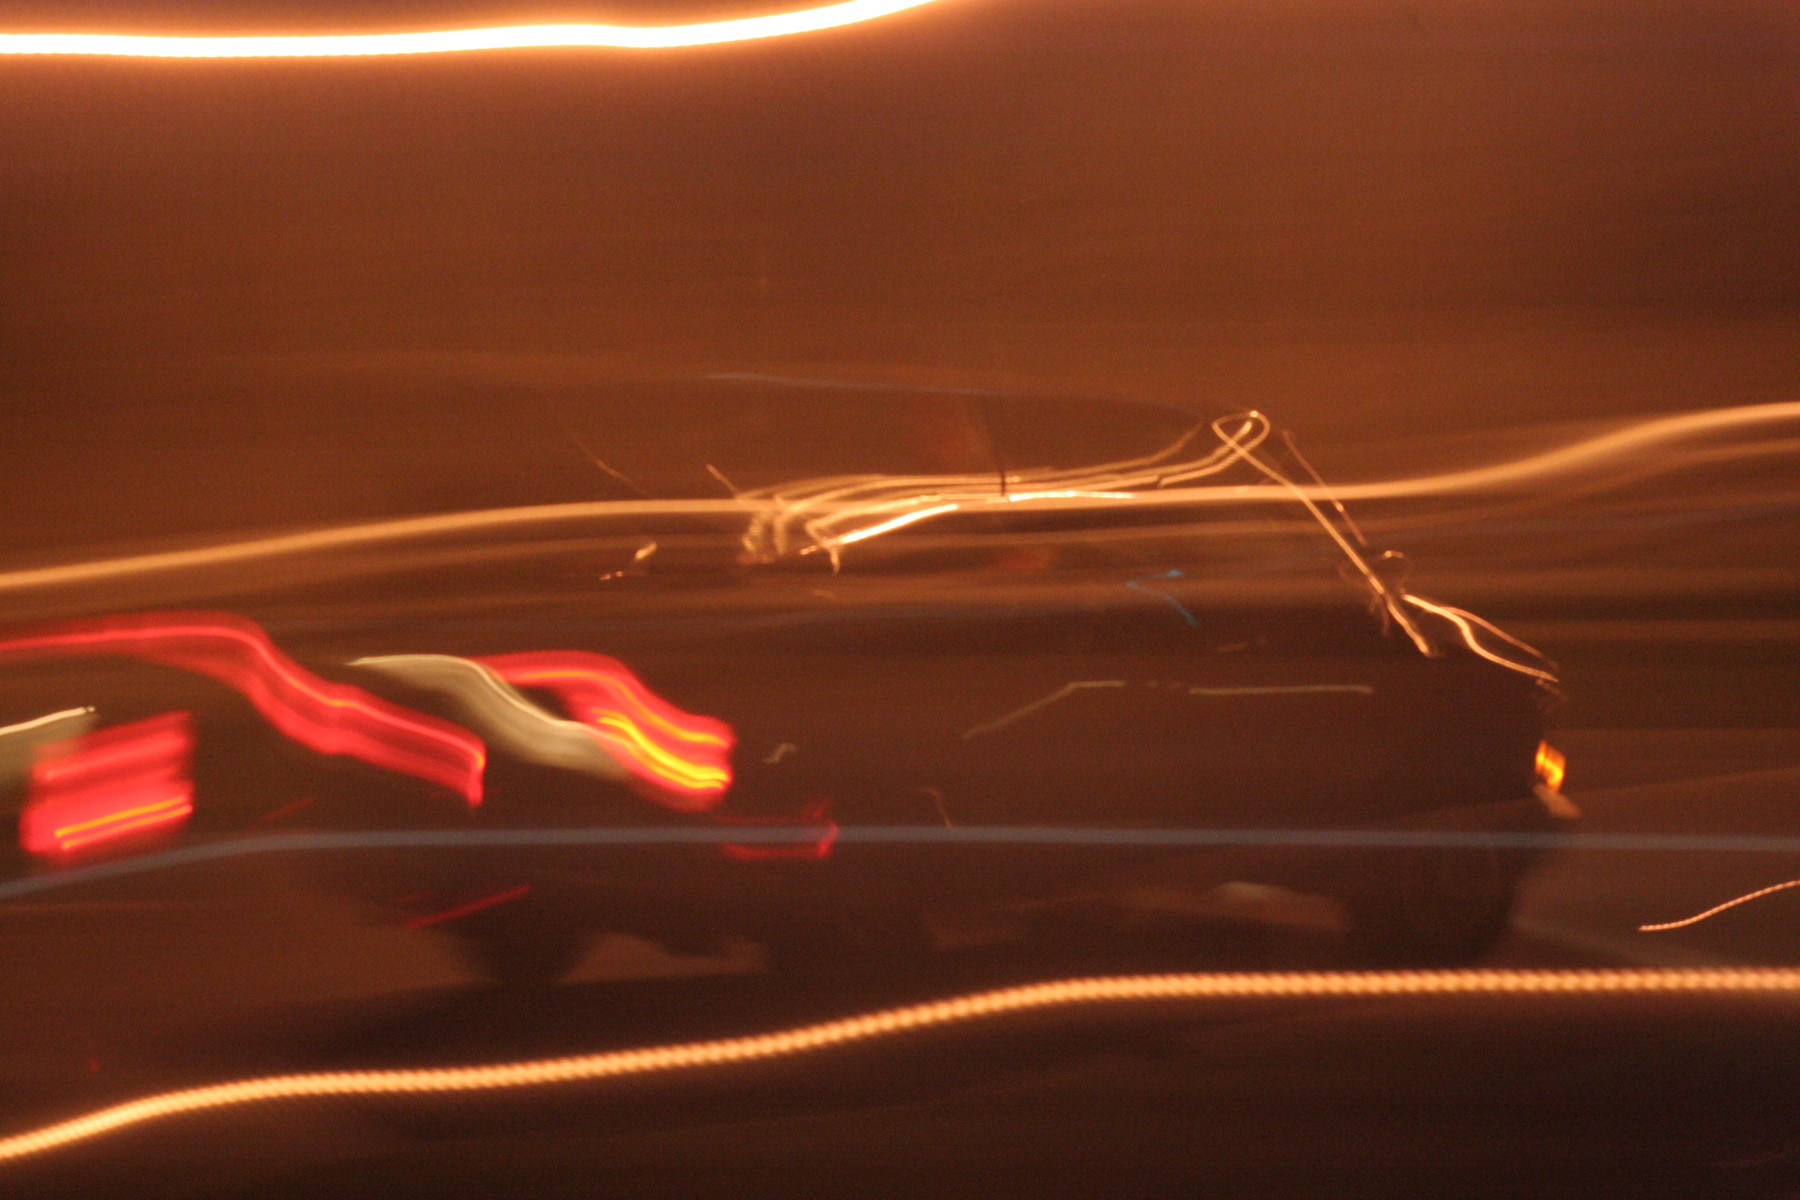 Light effects, Abstract, Beams, Effects, Fast, HQ Photo